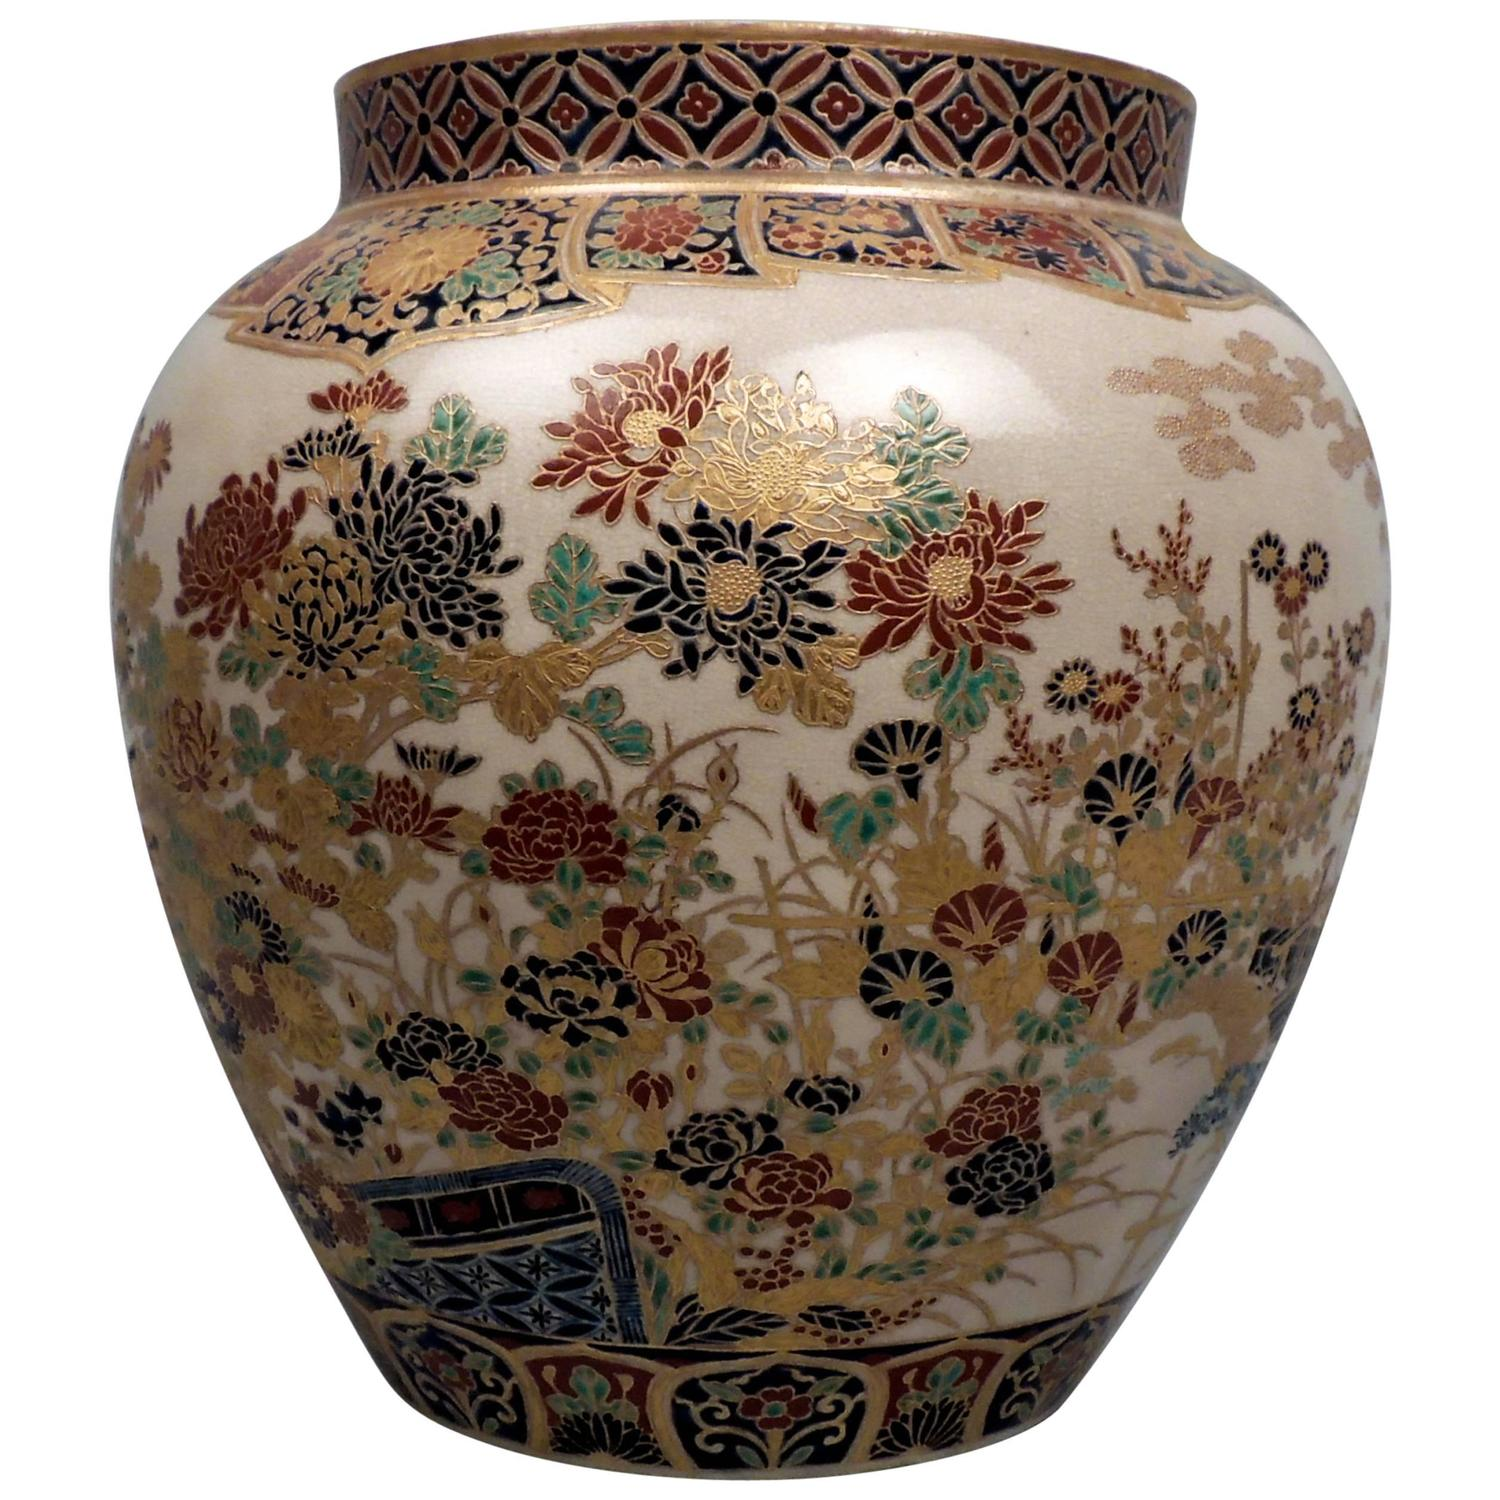 Large 19th century signed japanese imperial satsuma pottery vase large 19th century signed japanese imperial satsuma pottery vase with gosu blue for sale at 1stdibs reviewsmspy